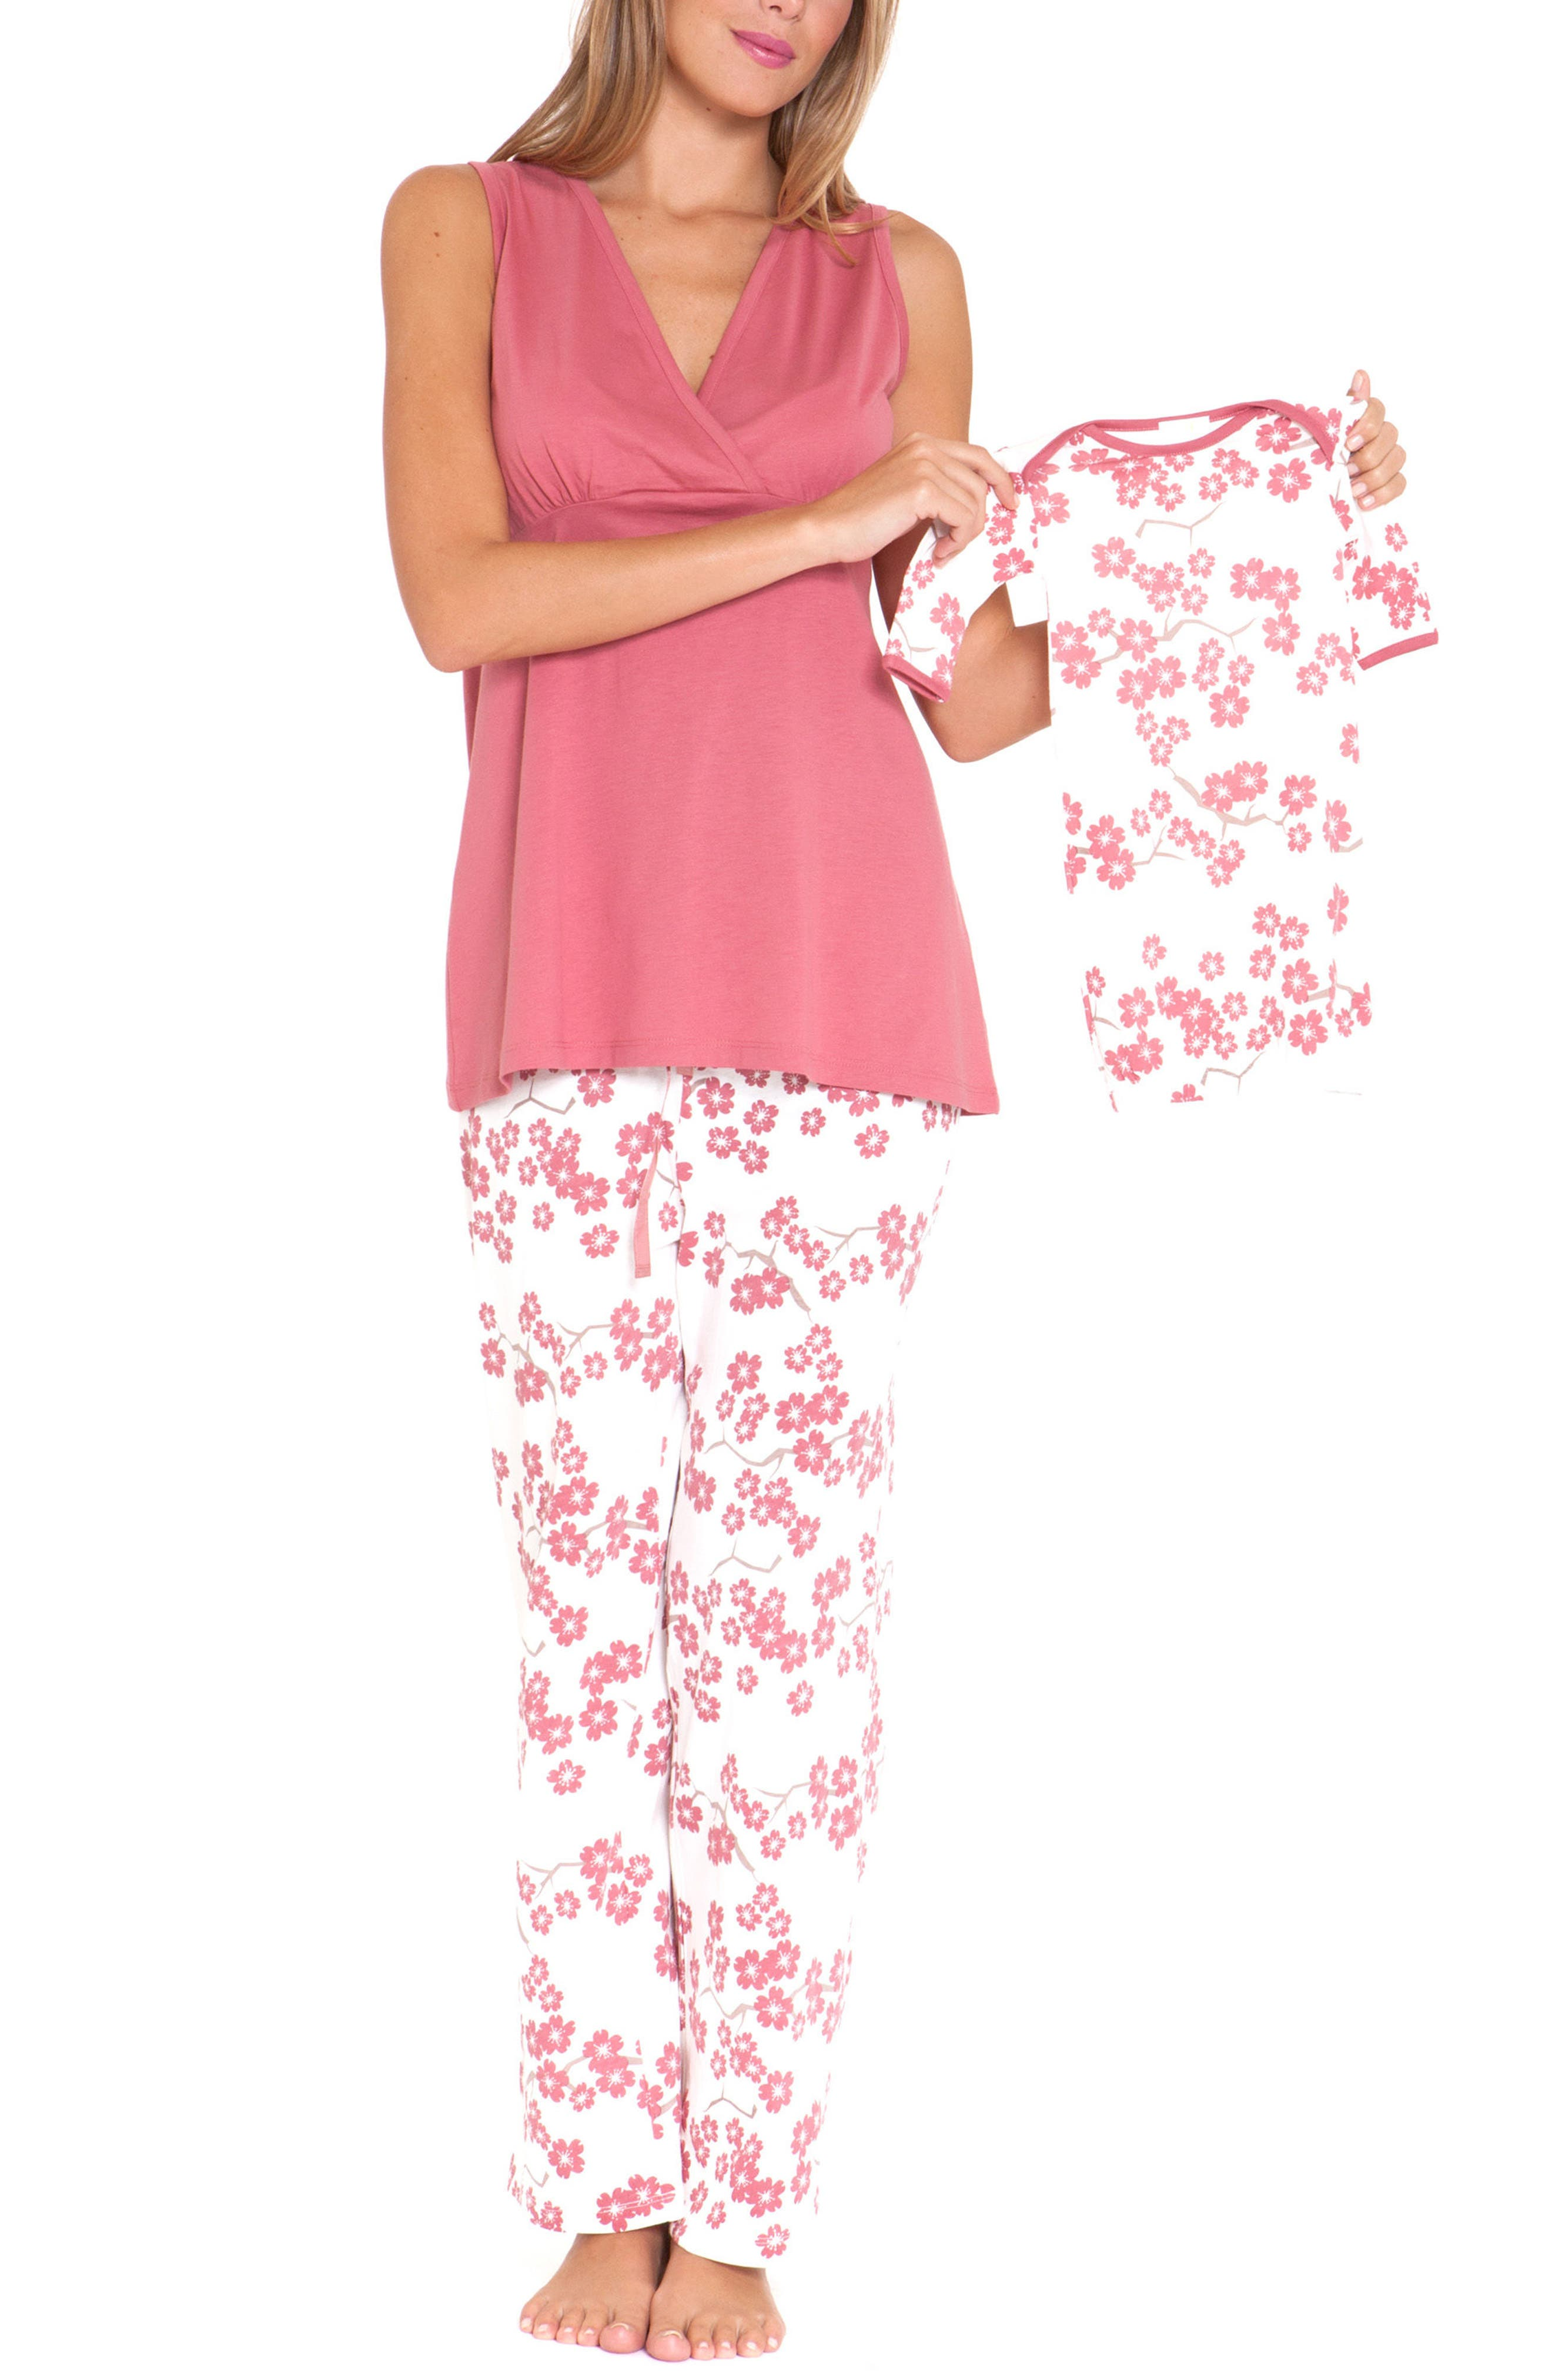 4-Piece Maternity Sleepwear Gift Set,                             Main thumbnail 1, color,                             664